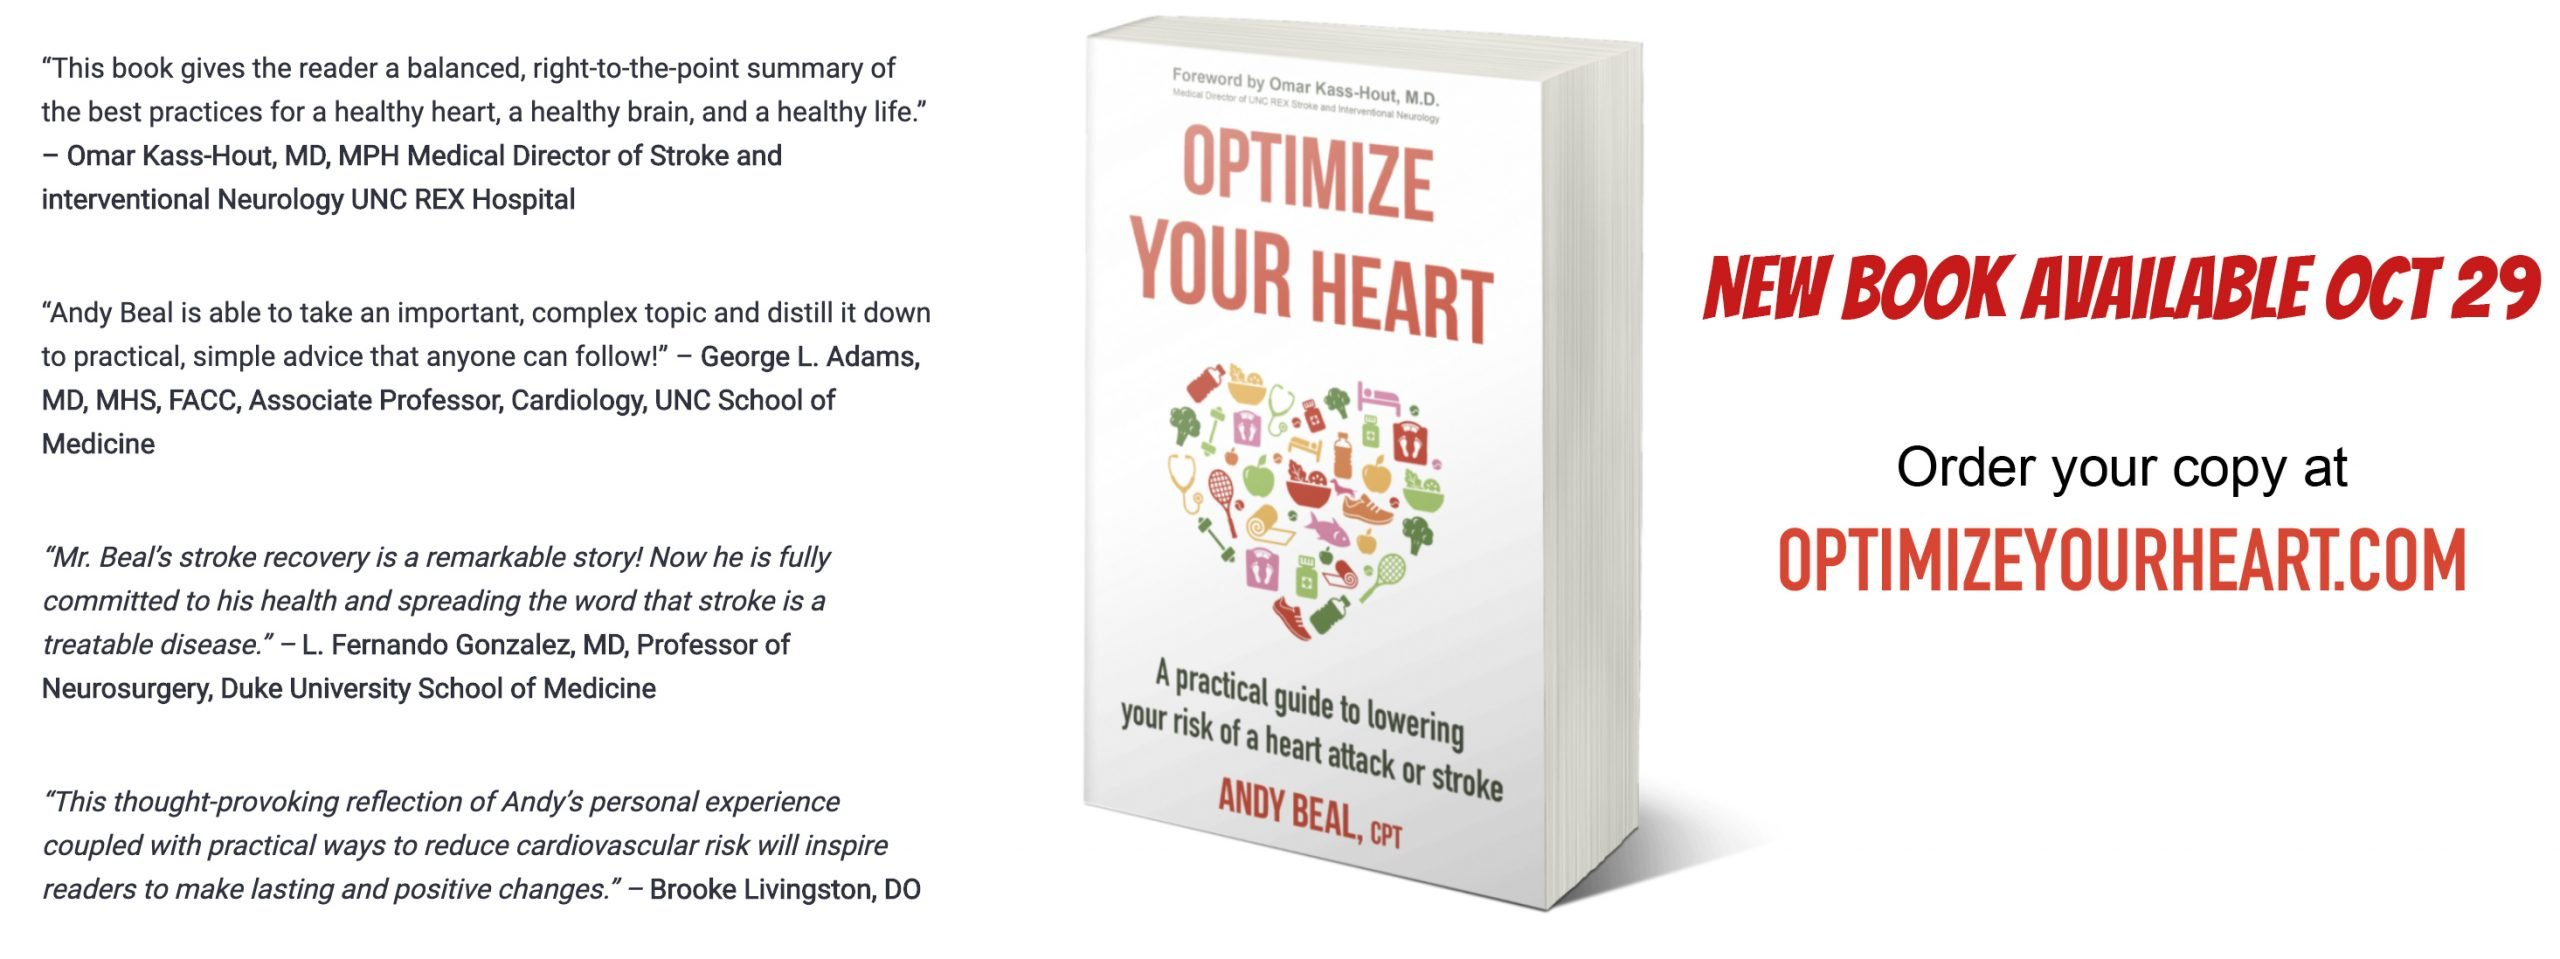 Optimize Your Heart